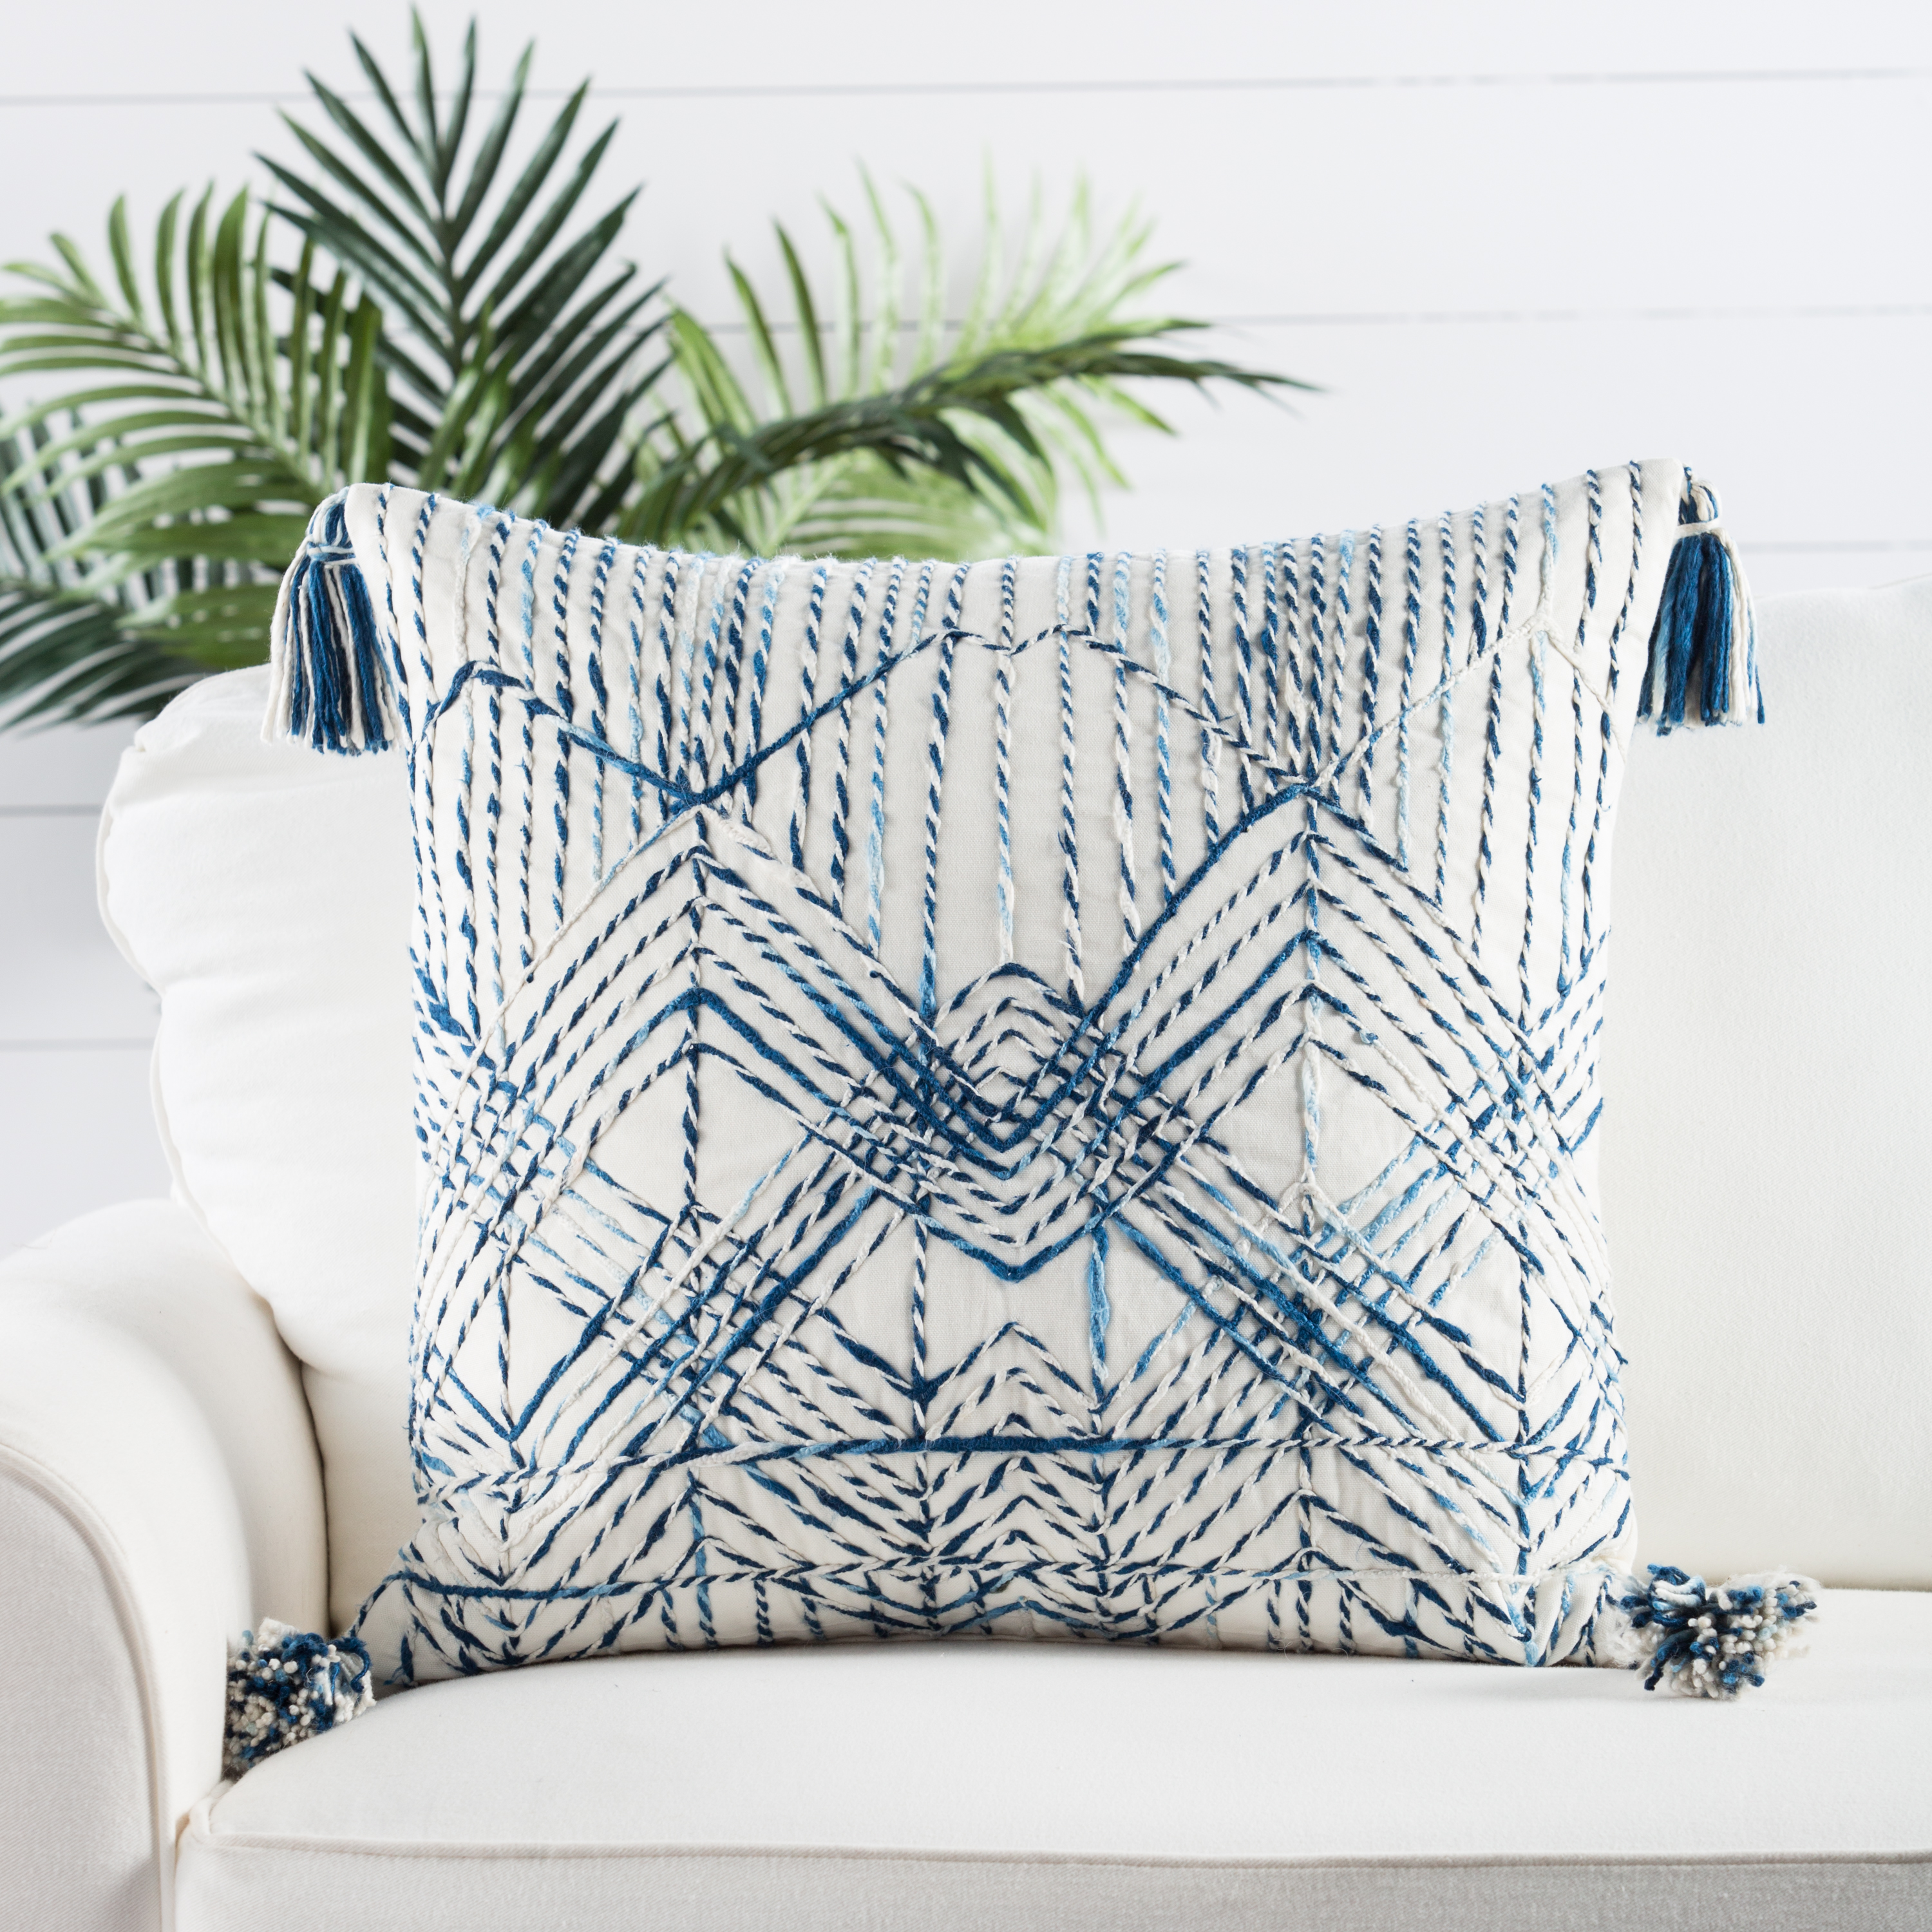 Breakwater Embroidered Pillow